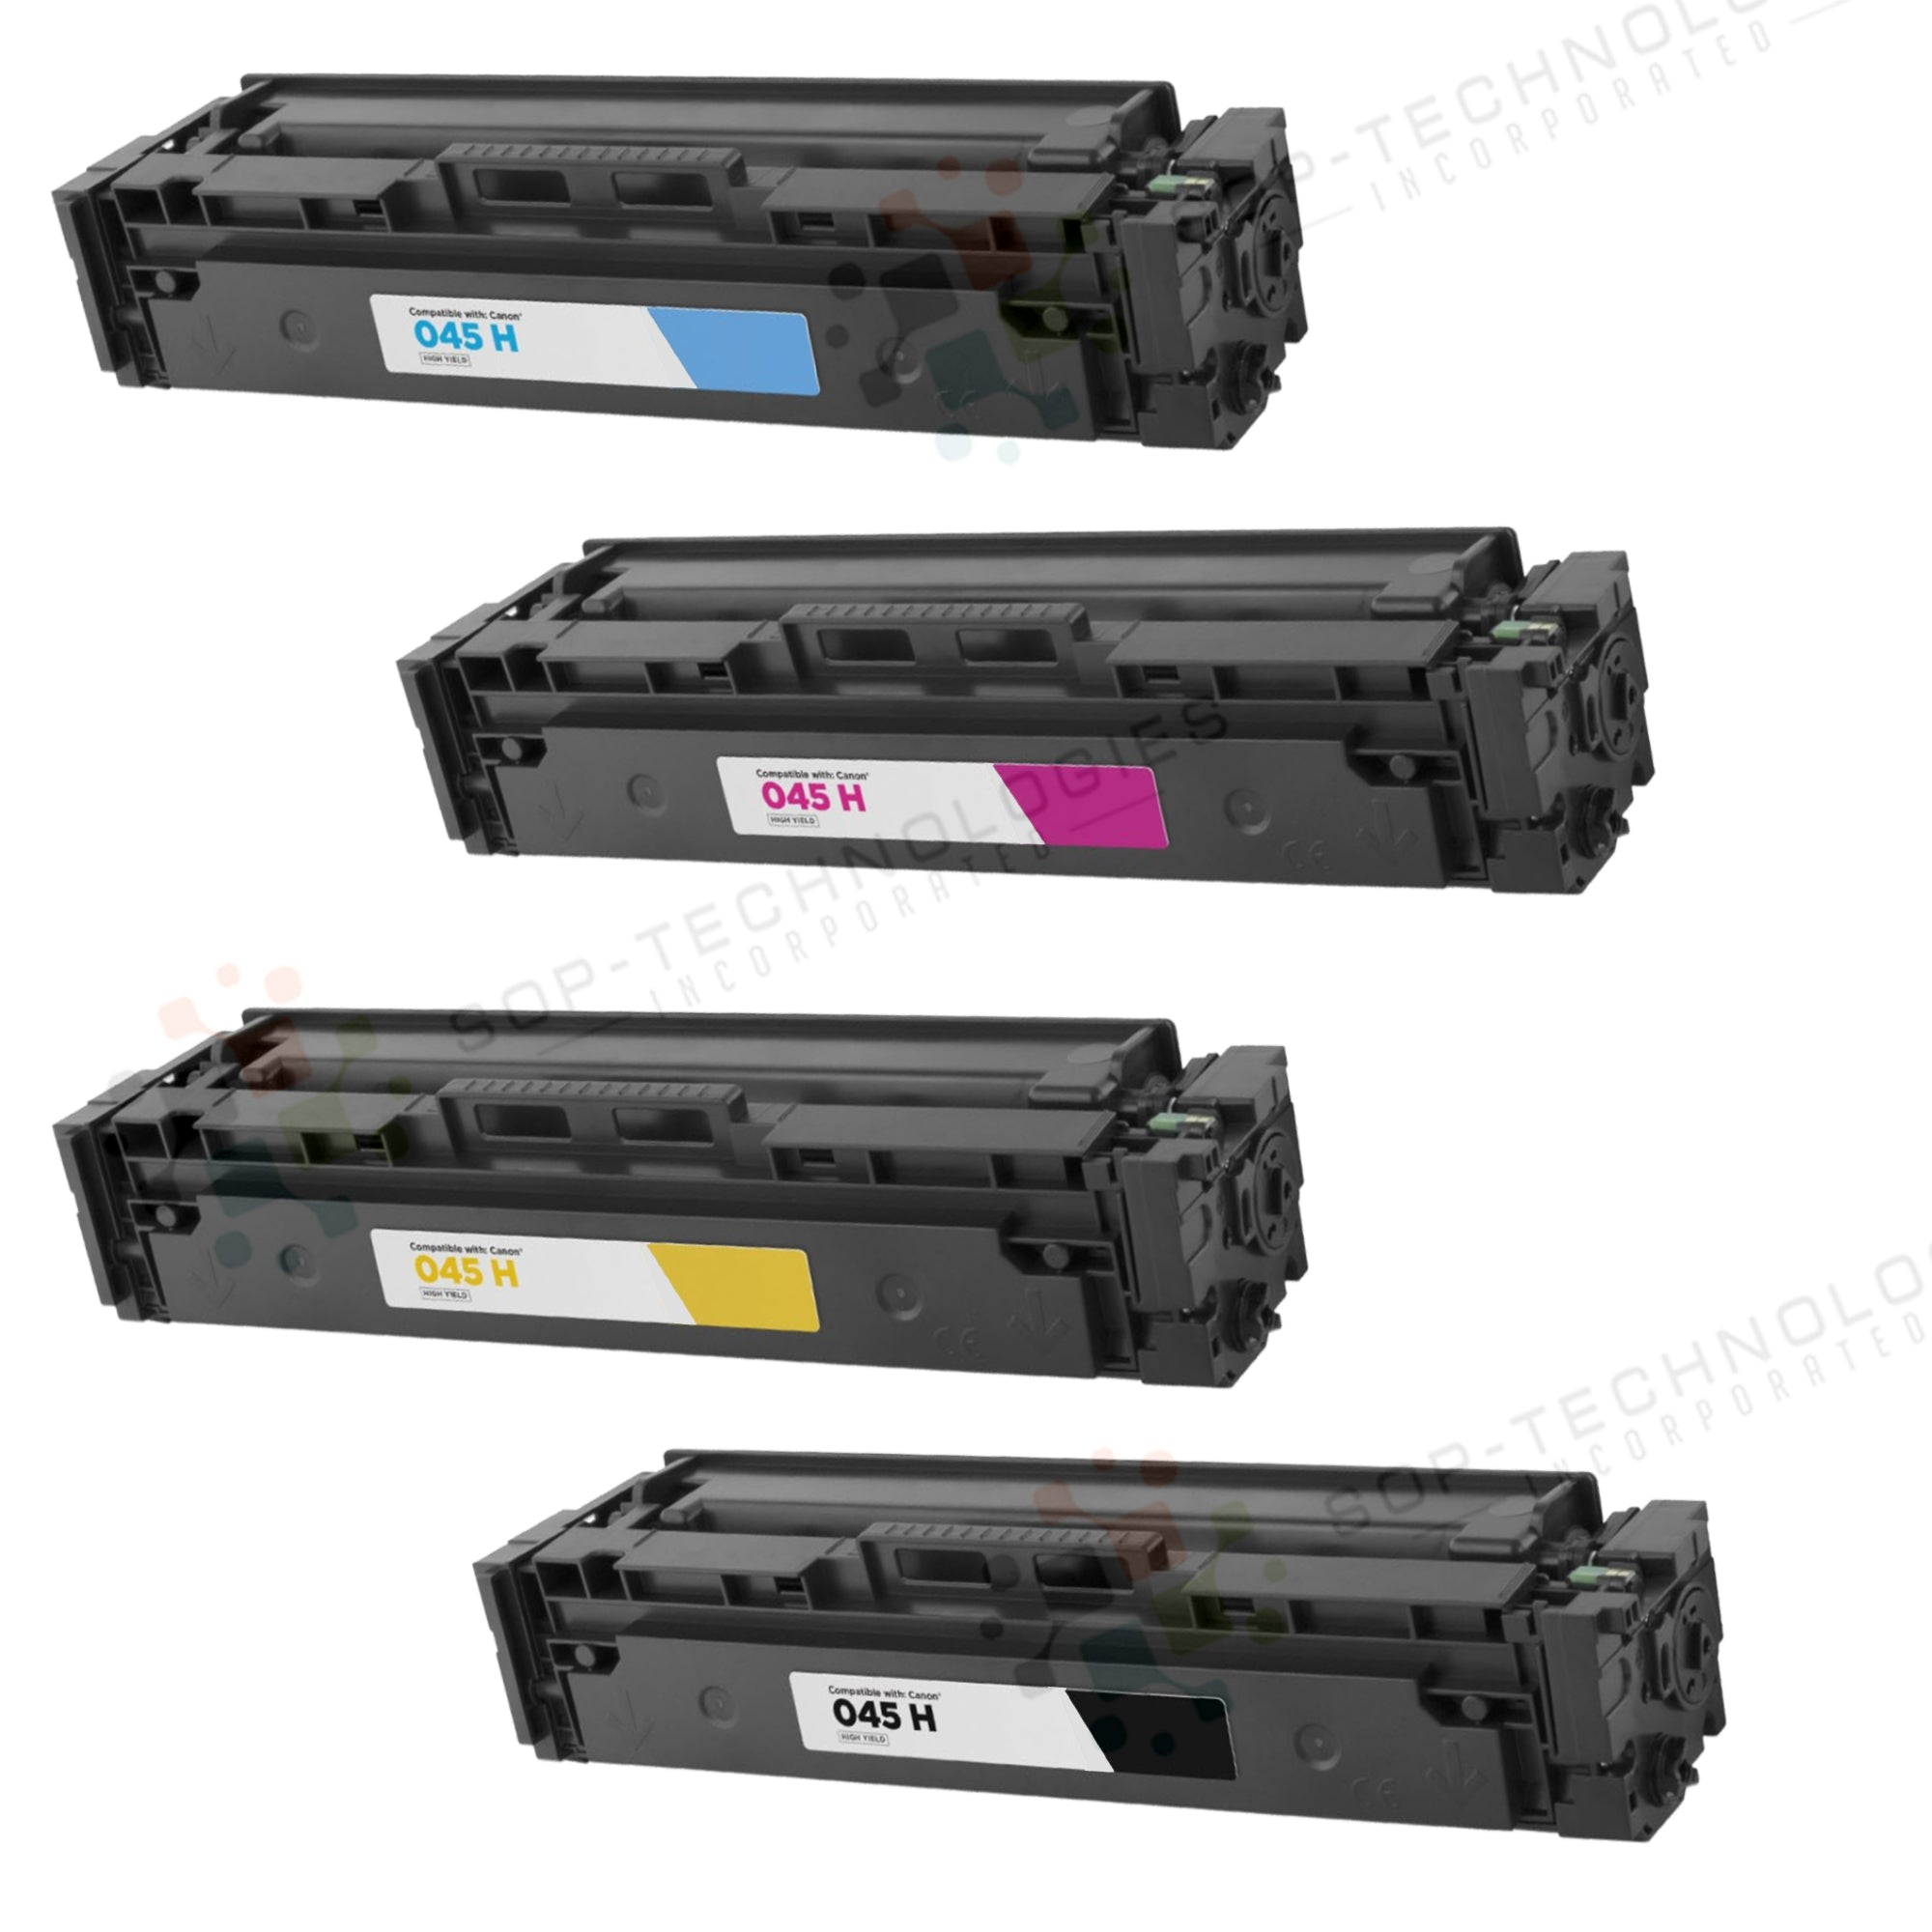 4pk Toner Cartridge for Canon Color imageCLASS MF634Cdw - SOP-TECHNOLOGIES, INC.